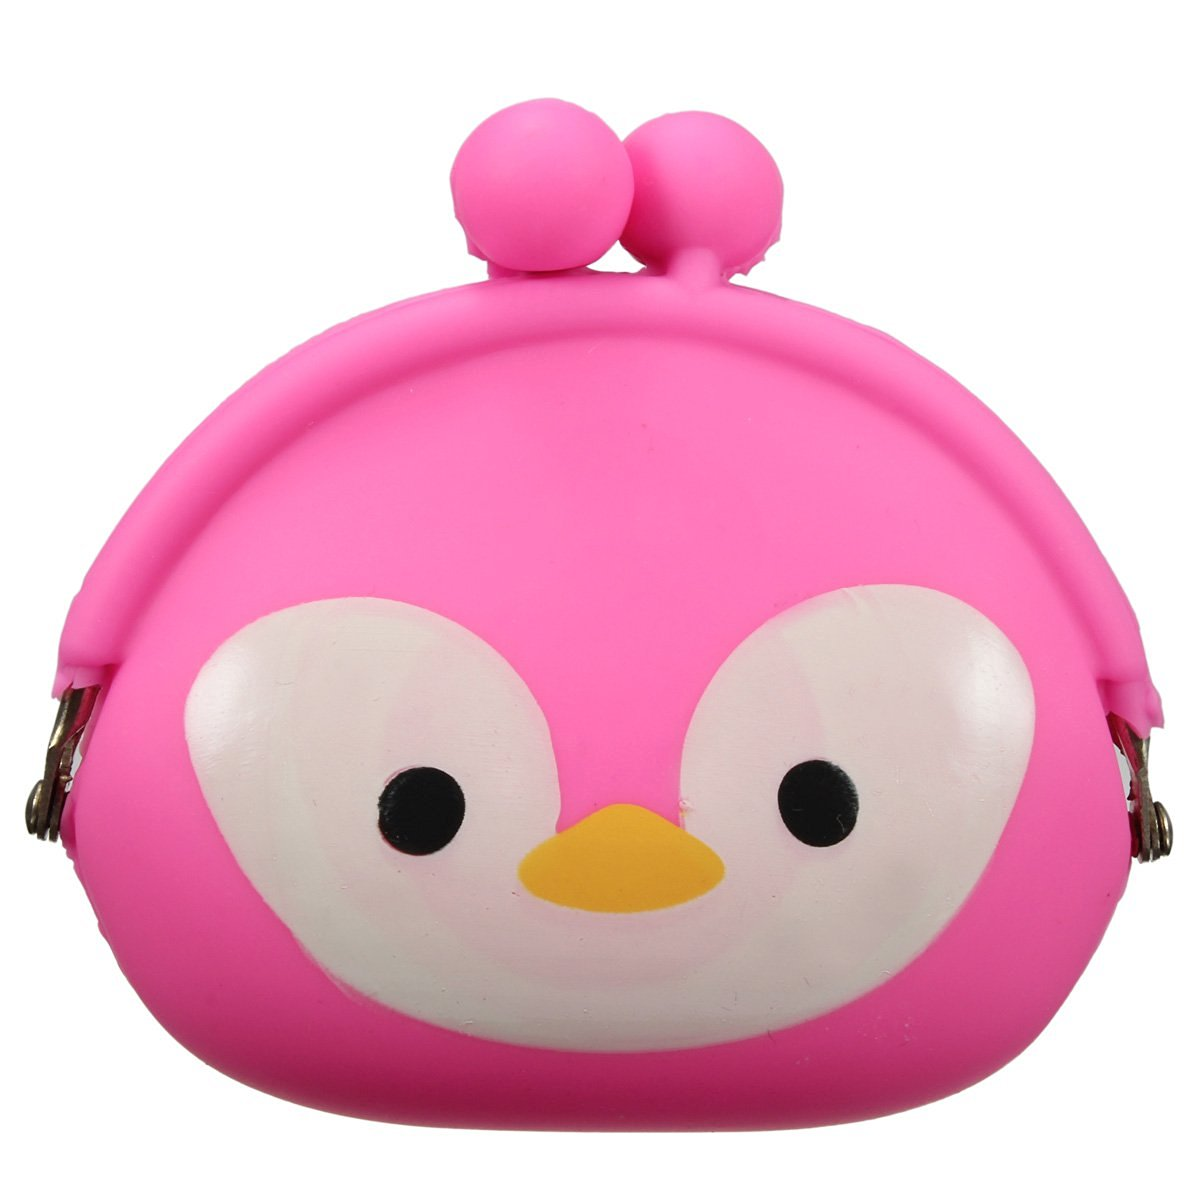 Women Girls Wallet Kawaii Cute Cartoon Animal Silicone Jelly Coin Bag Purse Kids Gift Penguin fggs 13 colors lovely girls wallet candy color kawaii cute cartoon animal multicolor silicone jelly coin bag purse kids gift